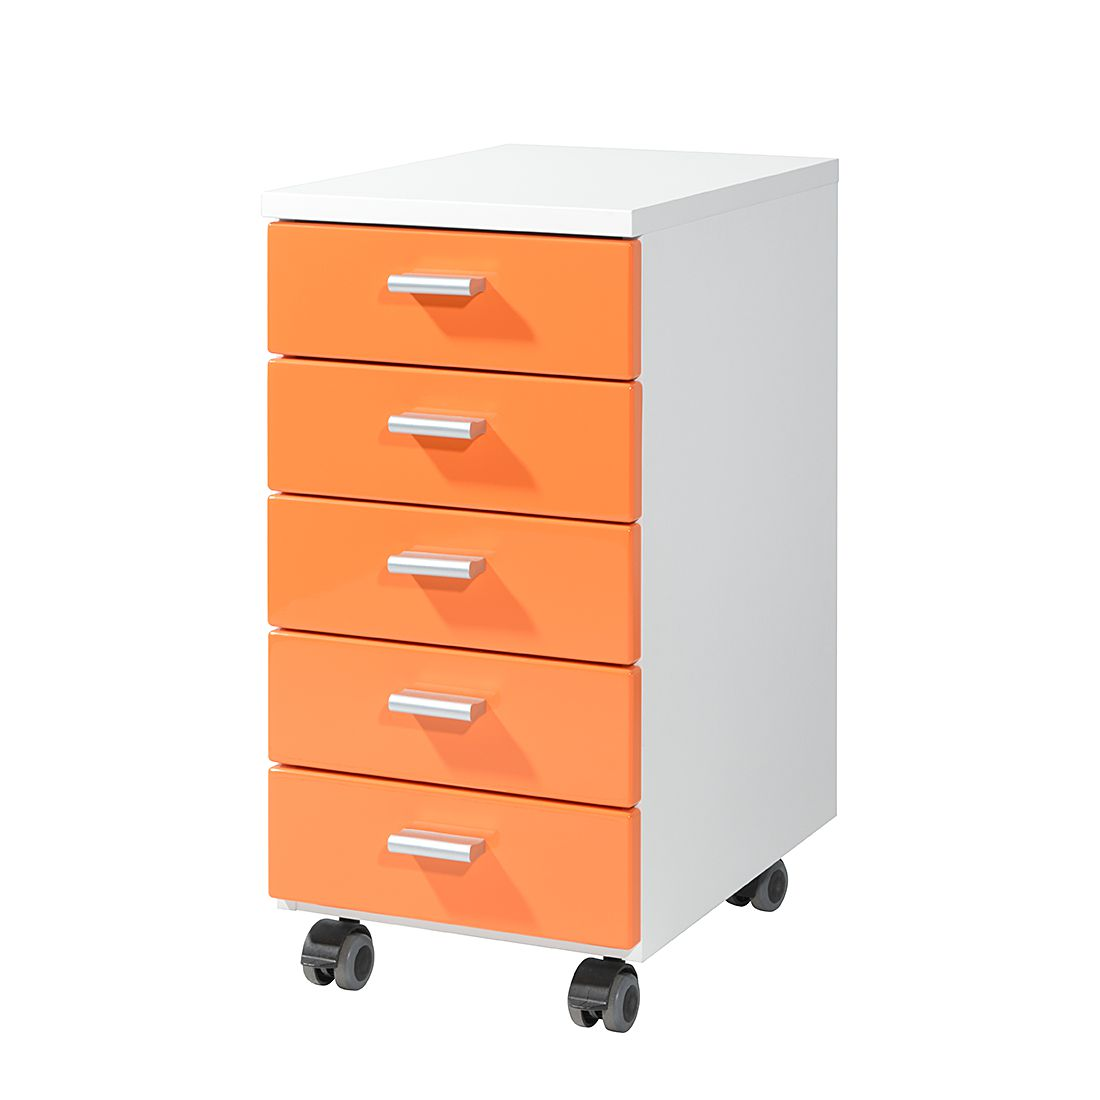 Rollcontainer Colour - Orange / Weiß, home24 office